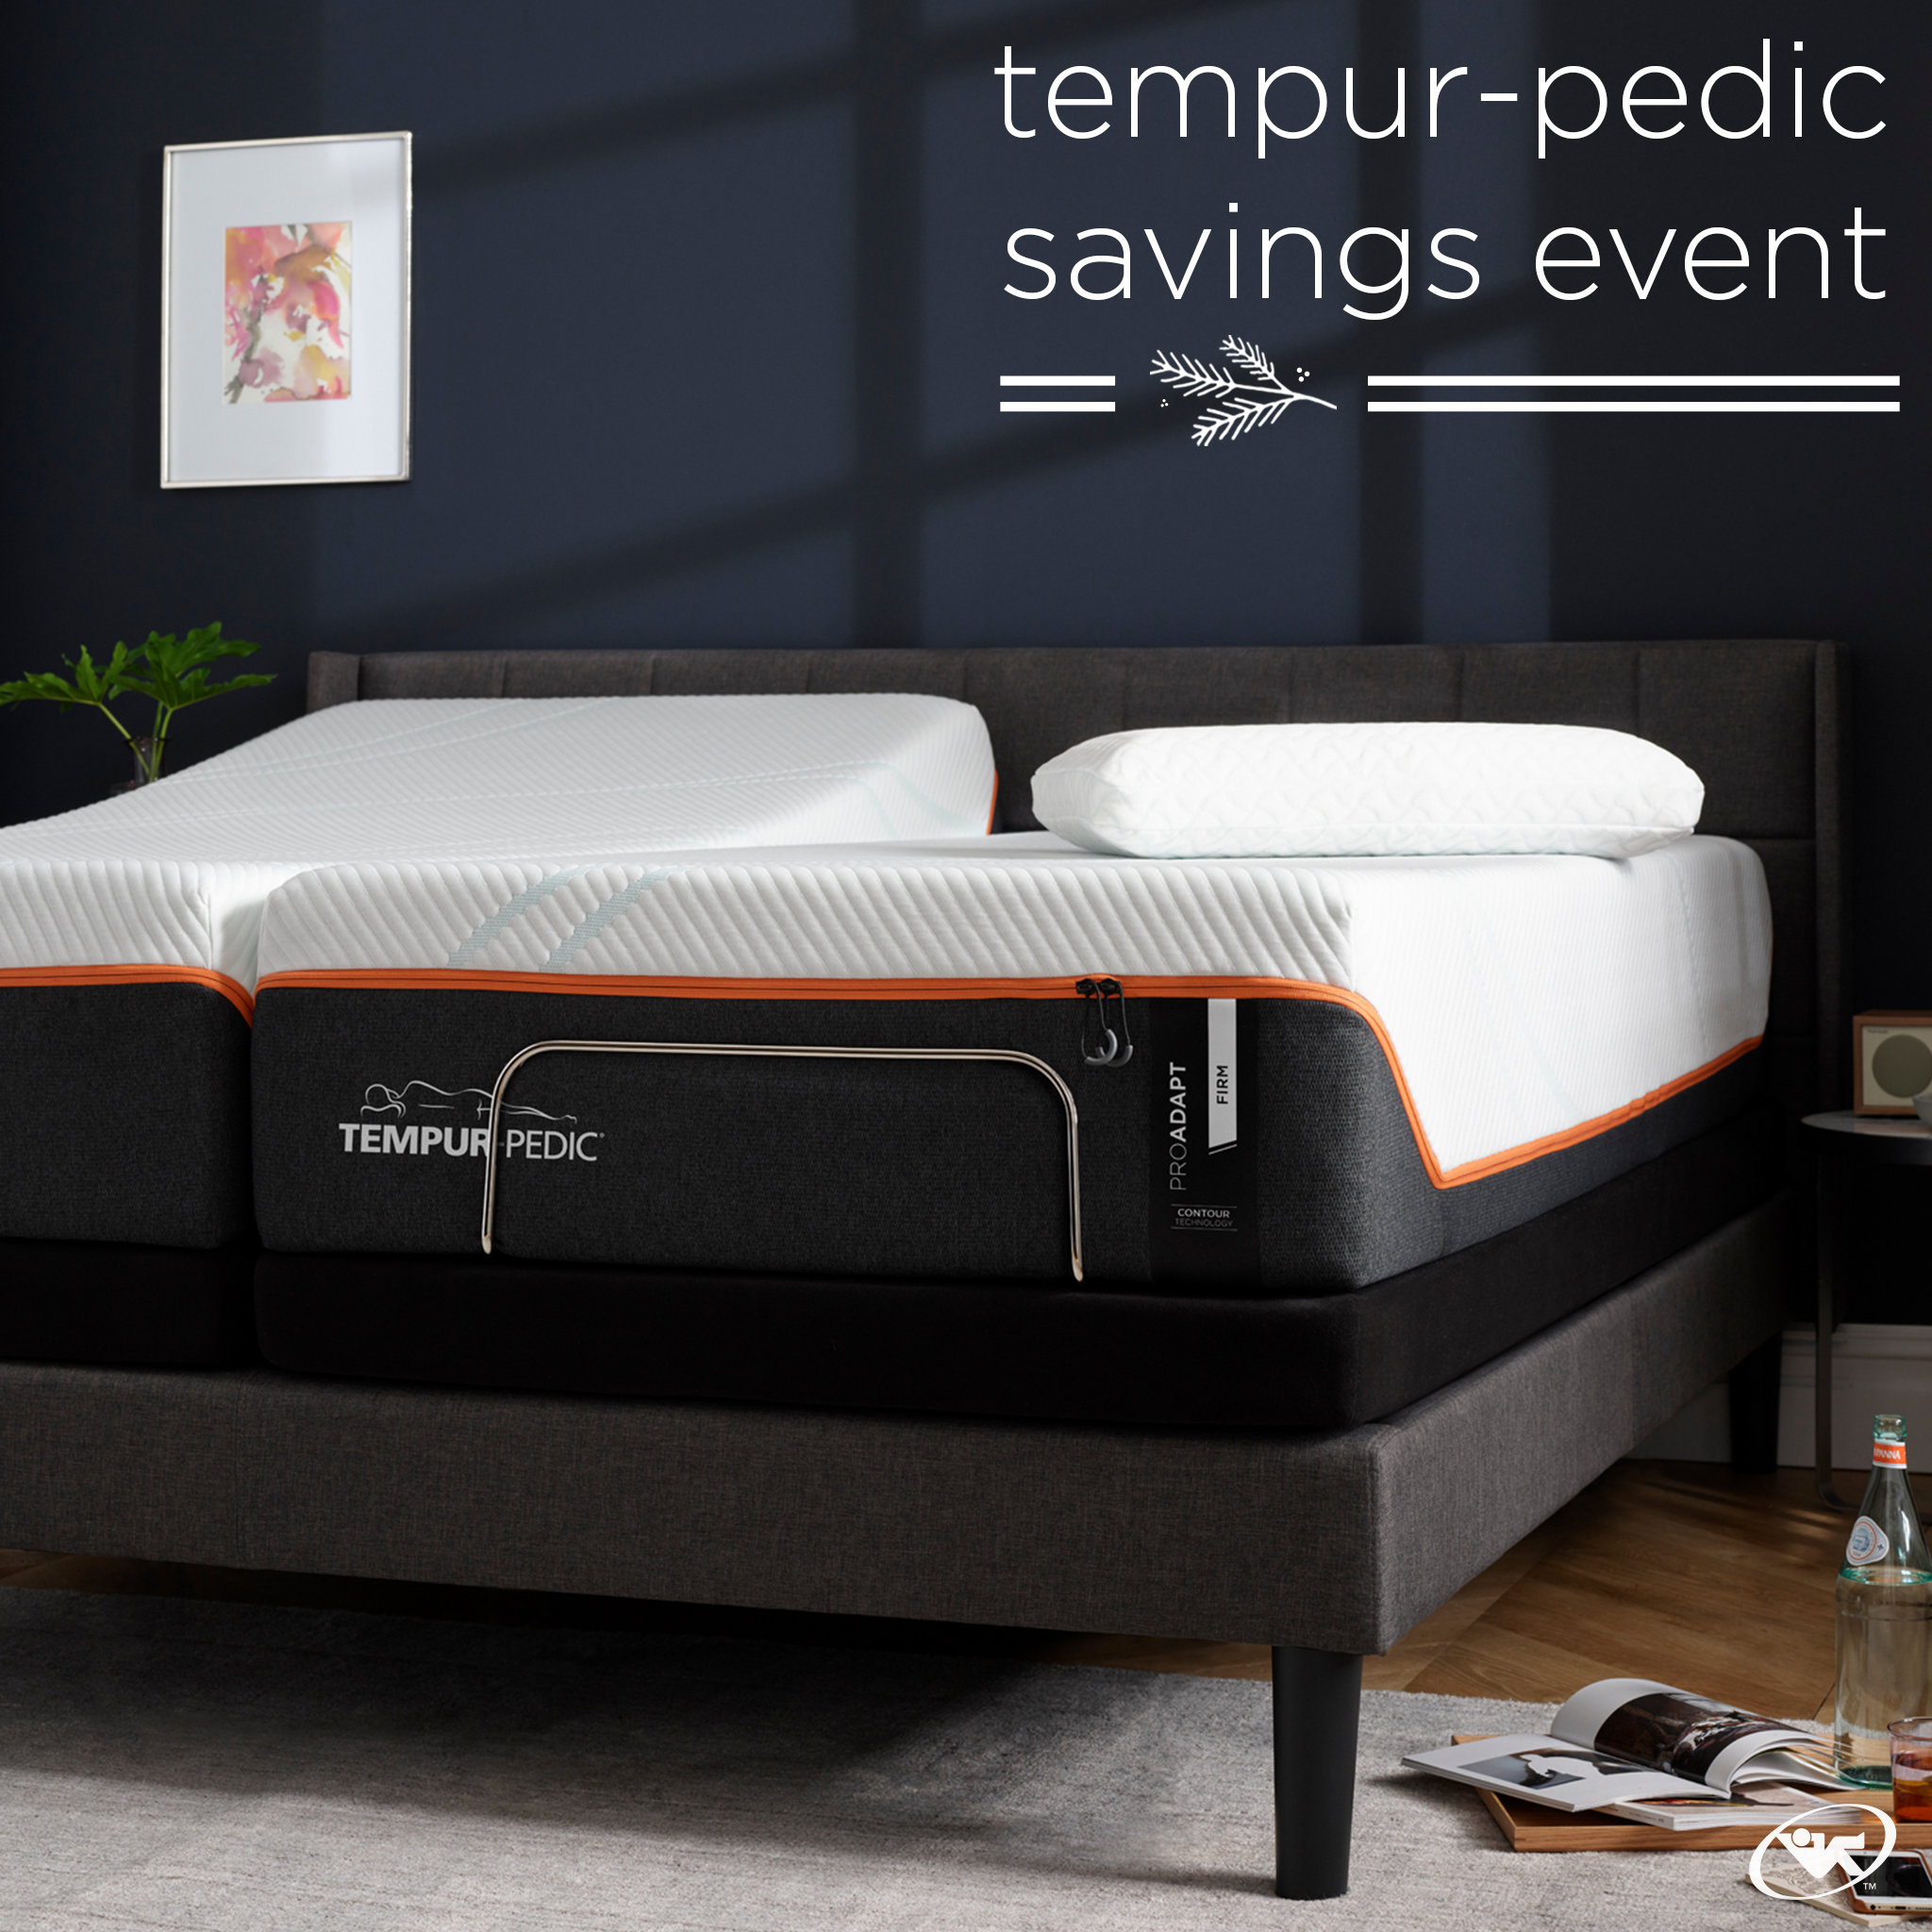 It S Time For Our Tempurpedic Savings Event Save Up To 500 On Select Adjustable Mattress Sets Also Choose Either 300 In Free Products Tempurpedic Mattress